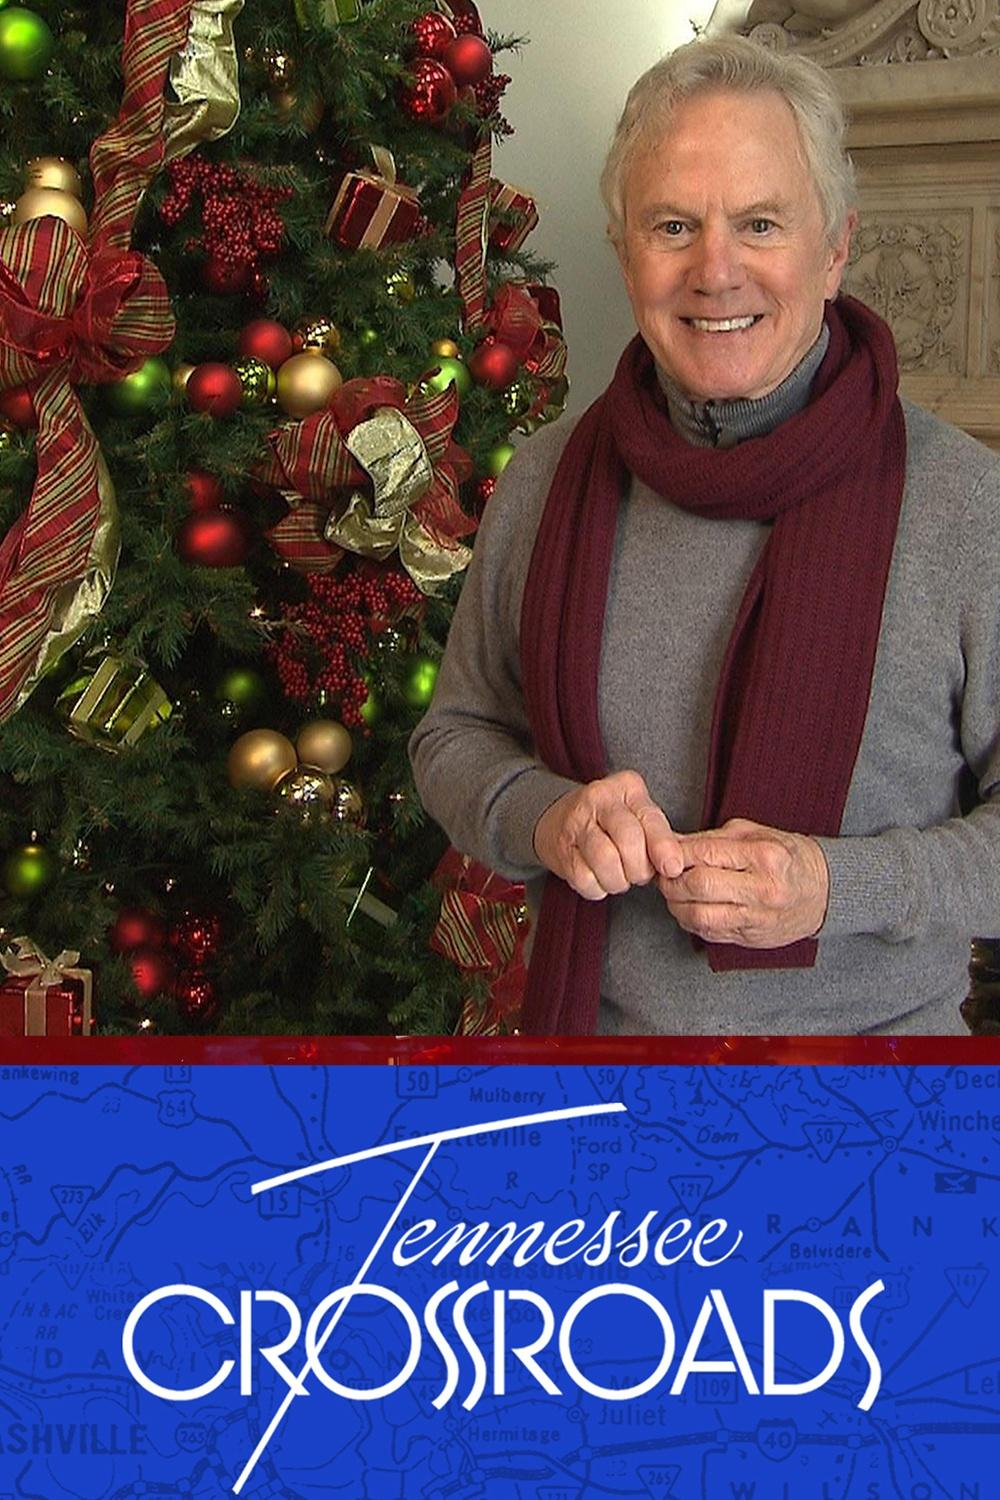 Tennessee Crossroads Christmas